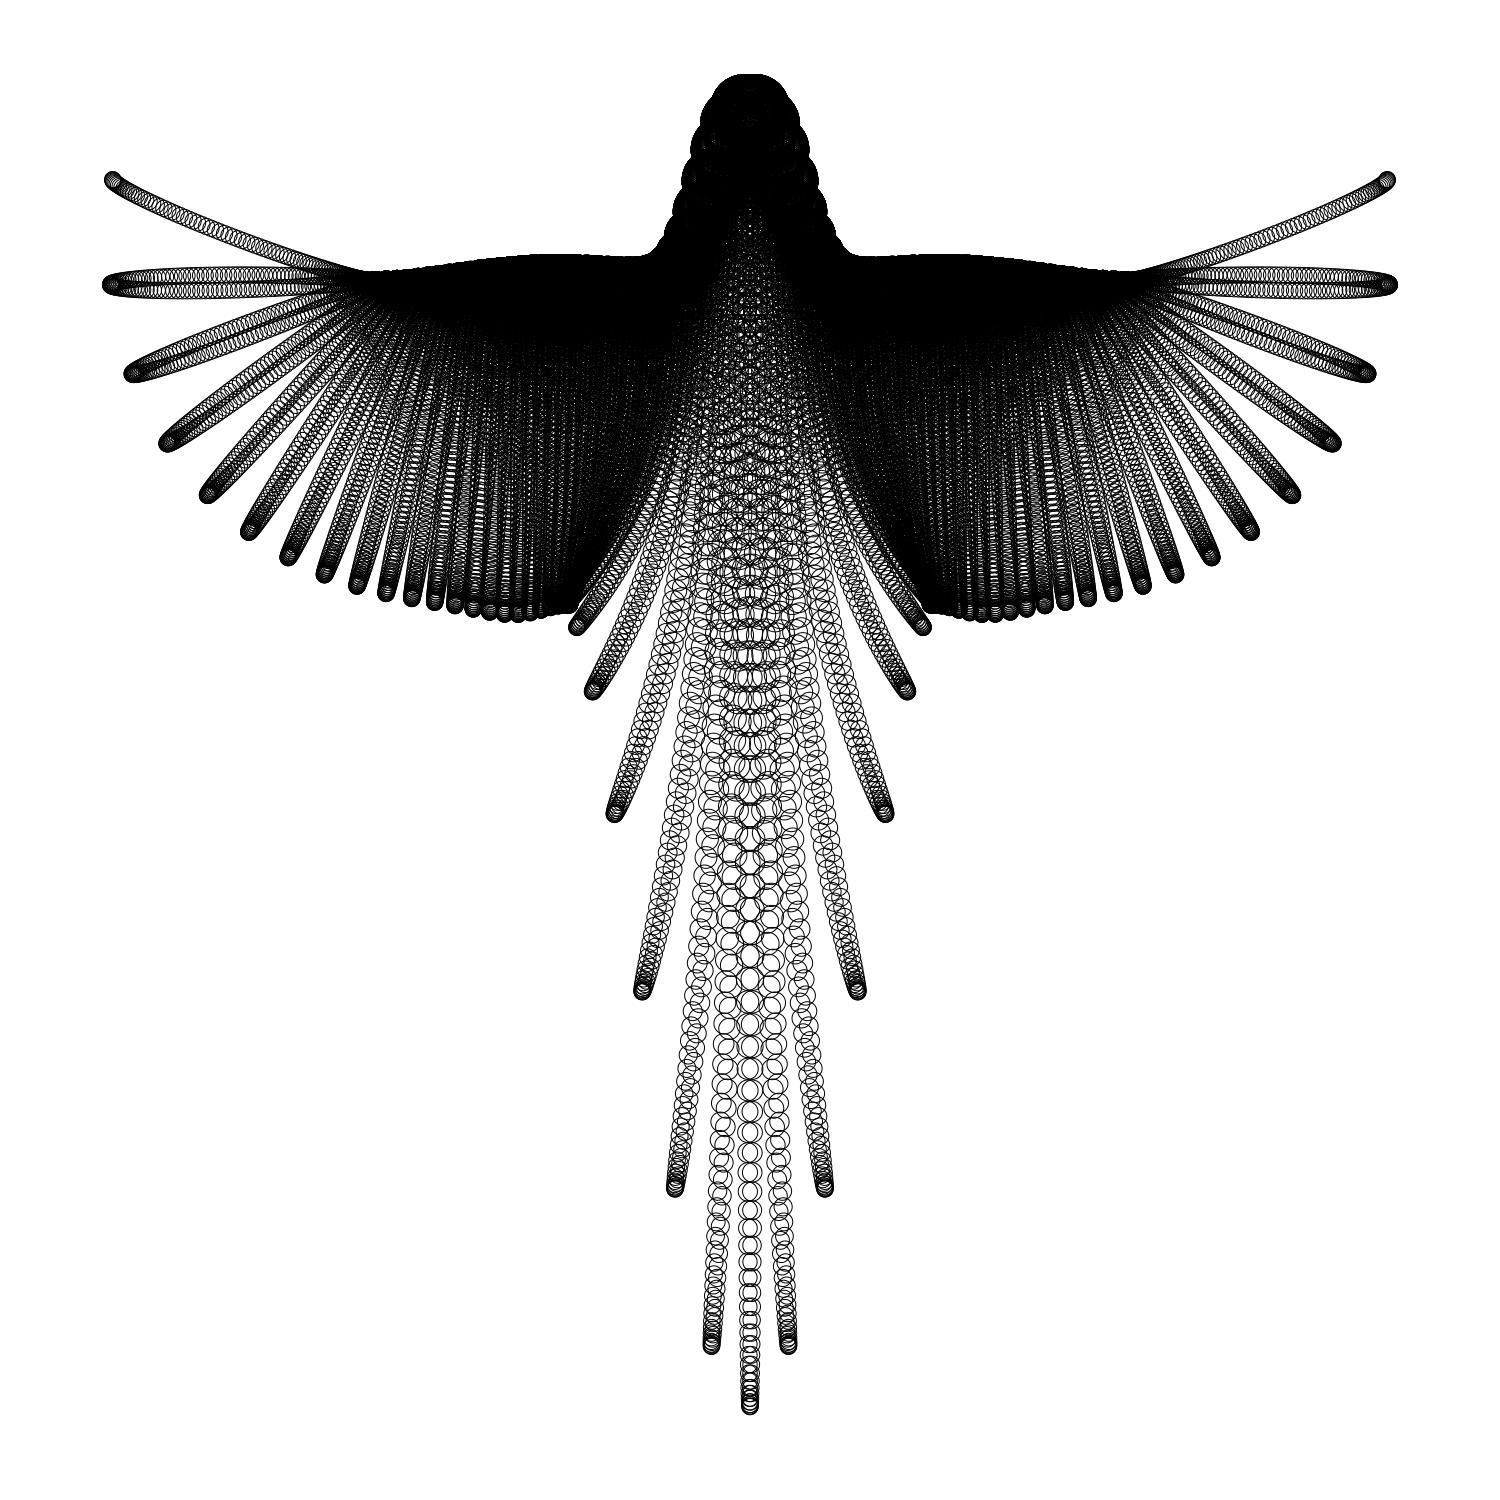 Drawn parrot bird fly HuffPost Drawing Flight in With